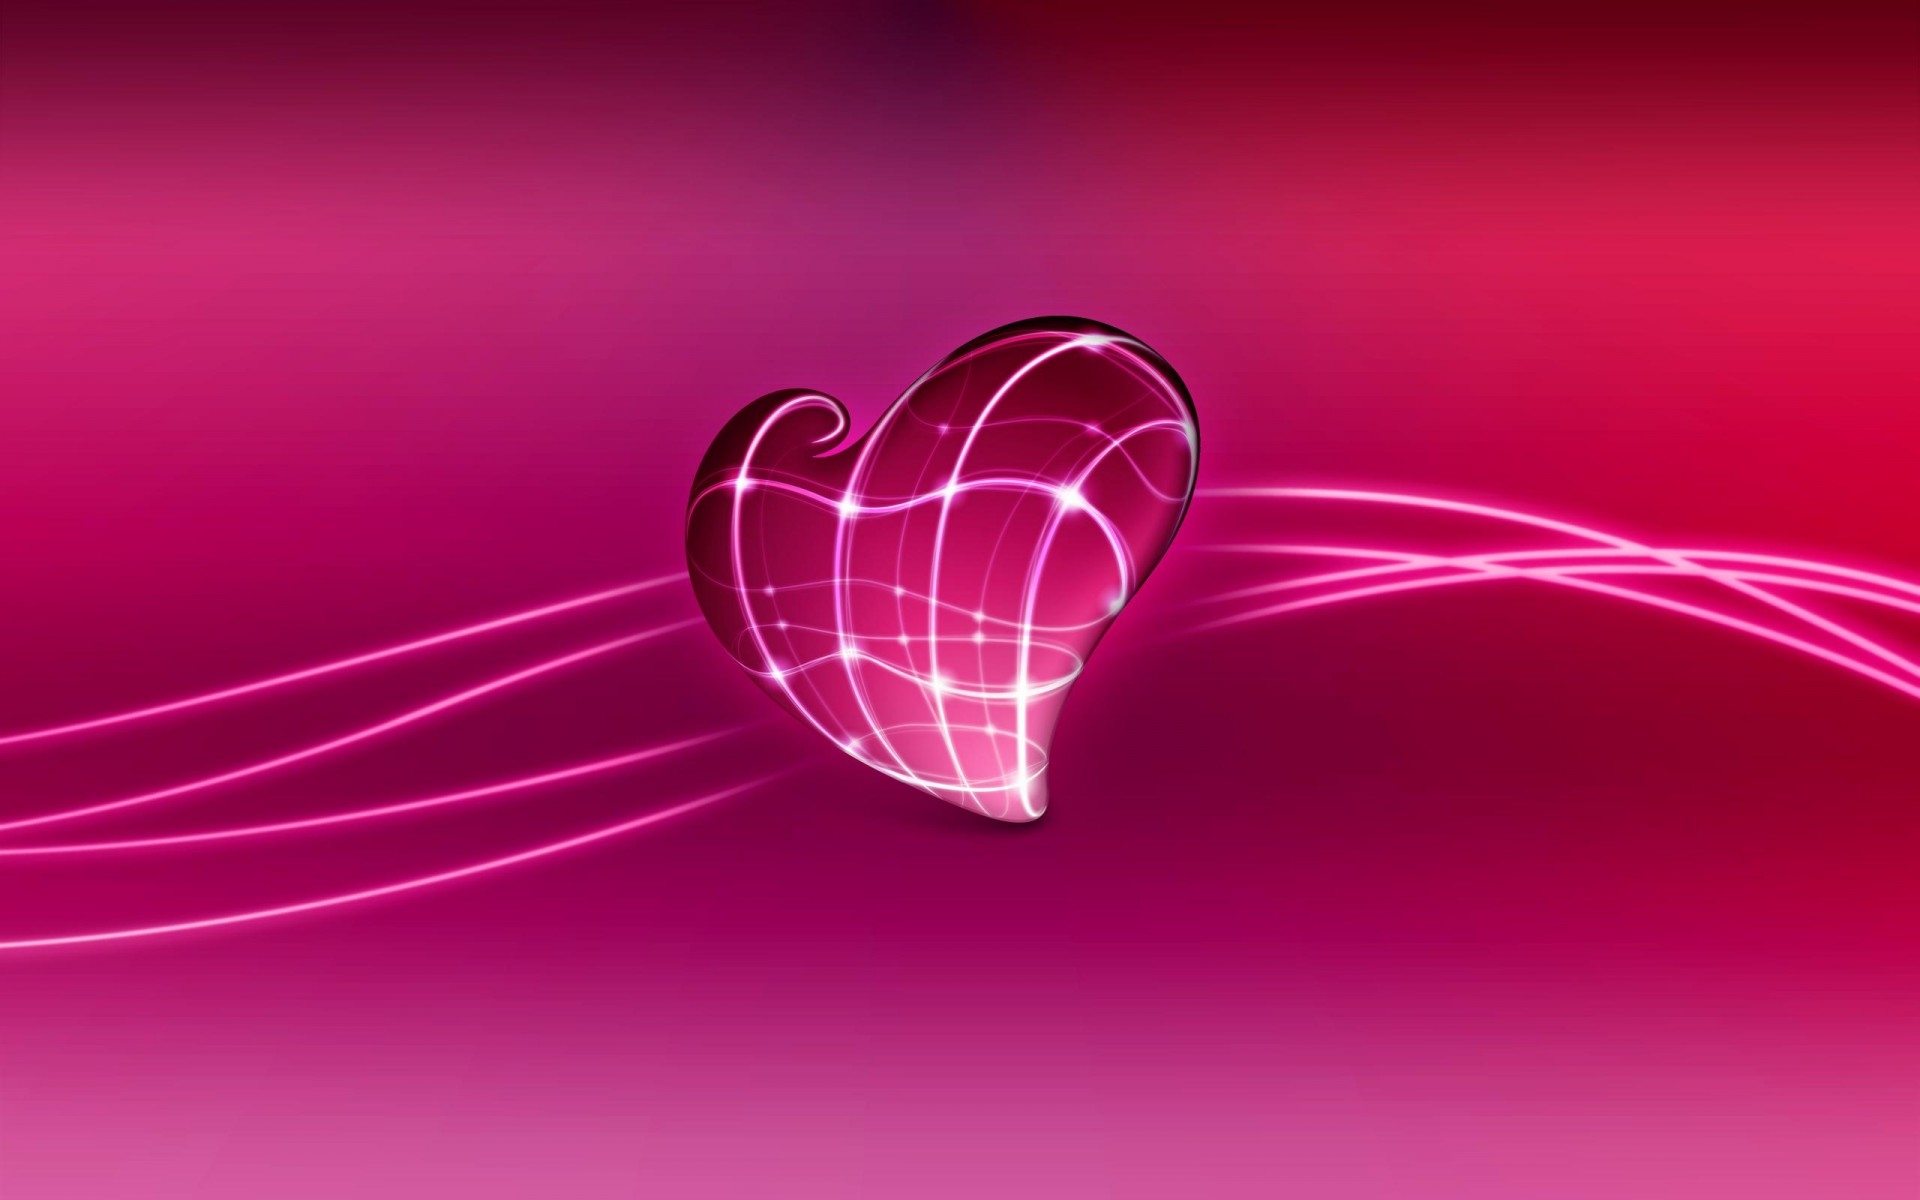 of-love-and-hearts-HD-Download-Free-of-love-and-hearts-Download-Download-Wa-wallpaper-wpc58010012